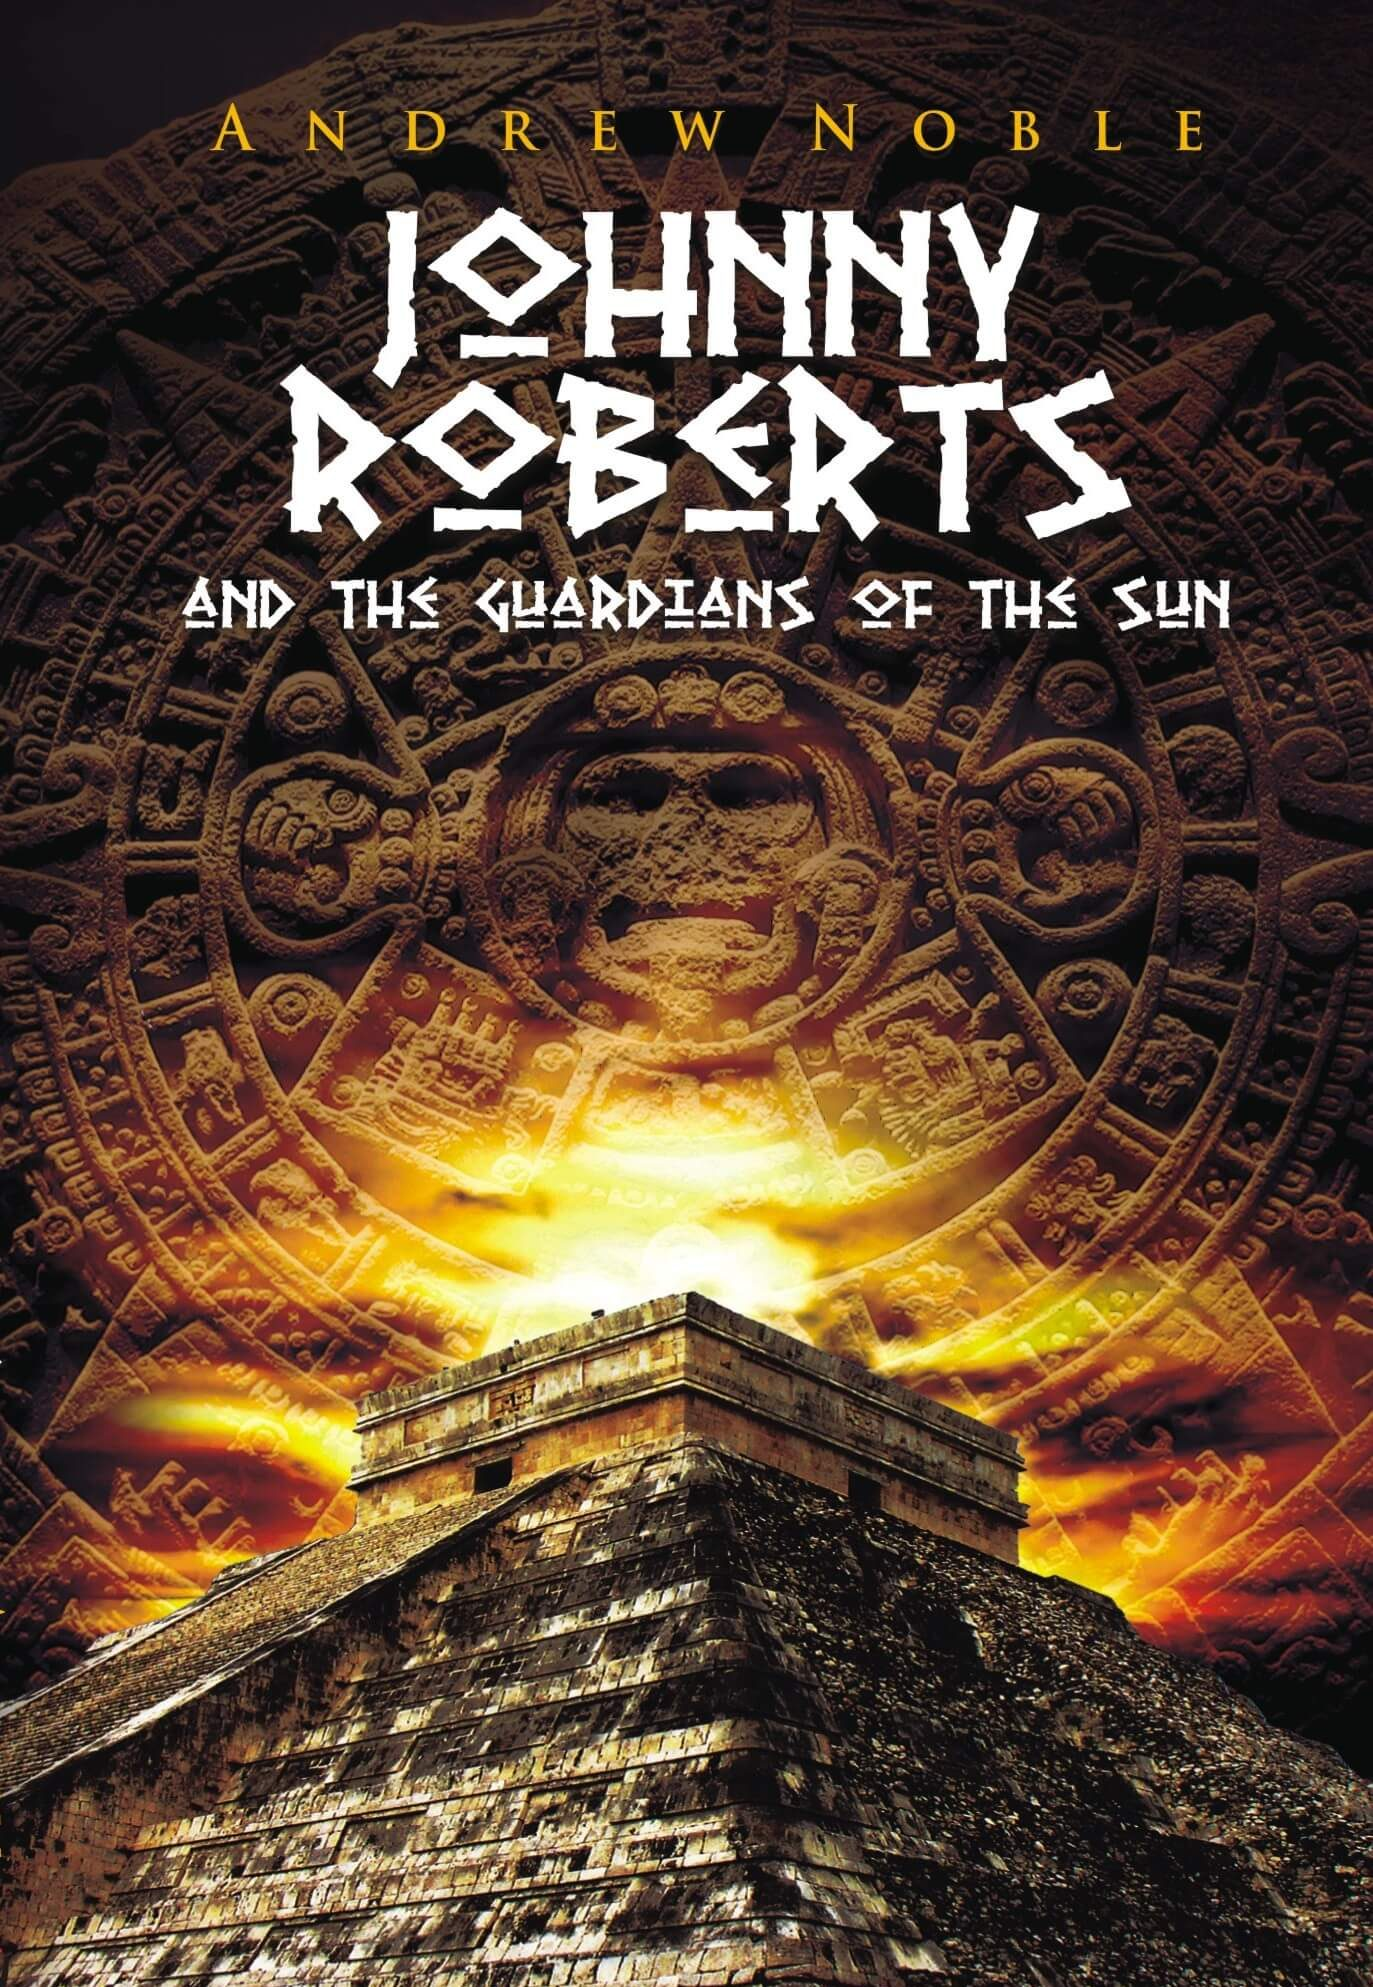 johnny roberts and the guardians of the sun andrew noble book cover